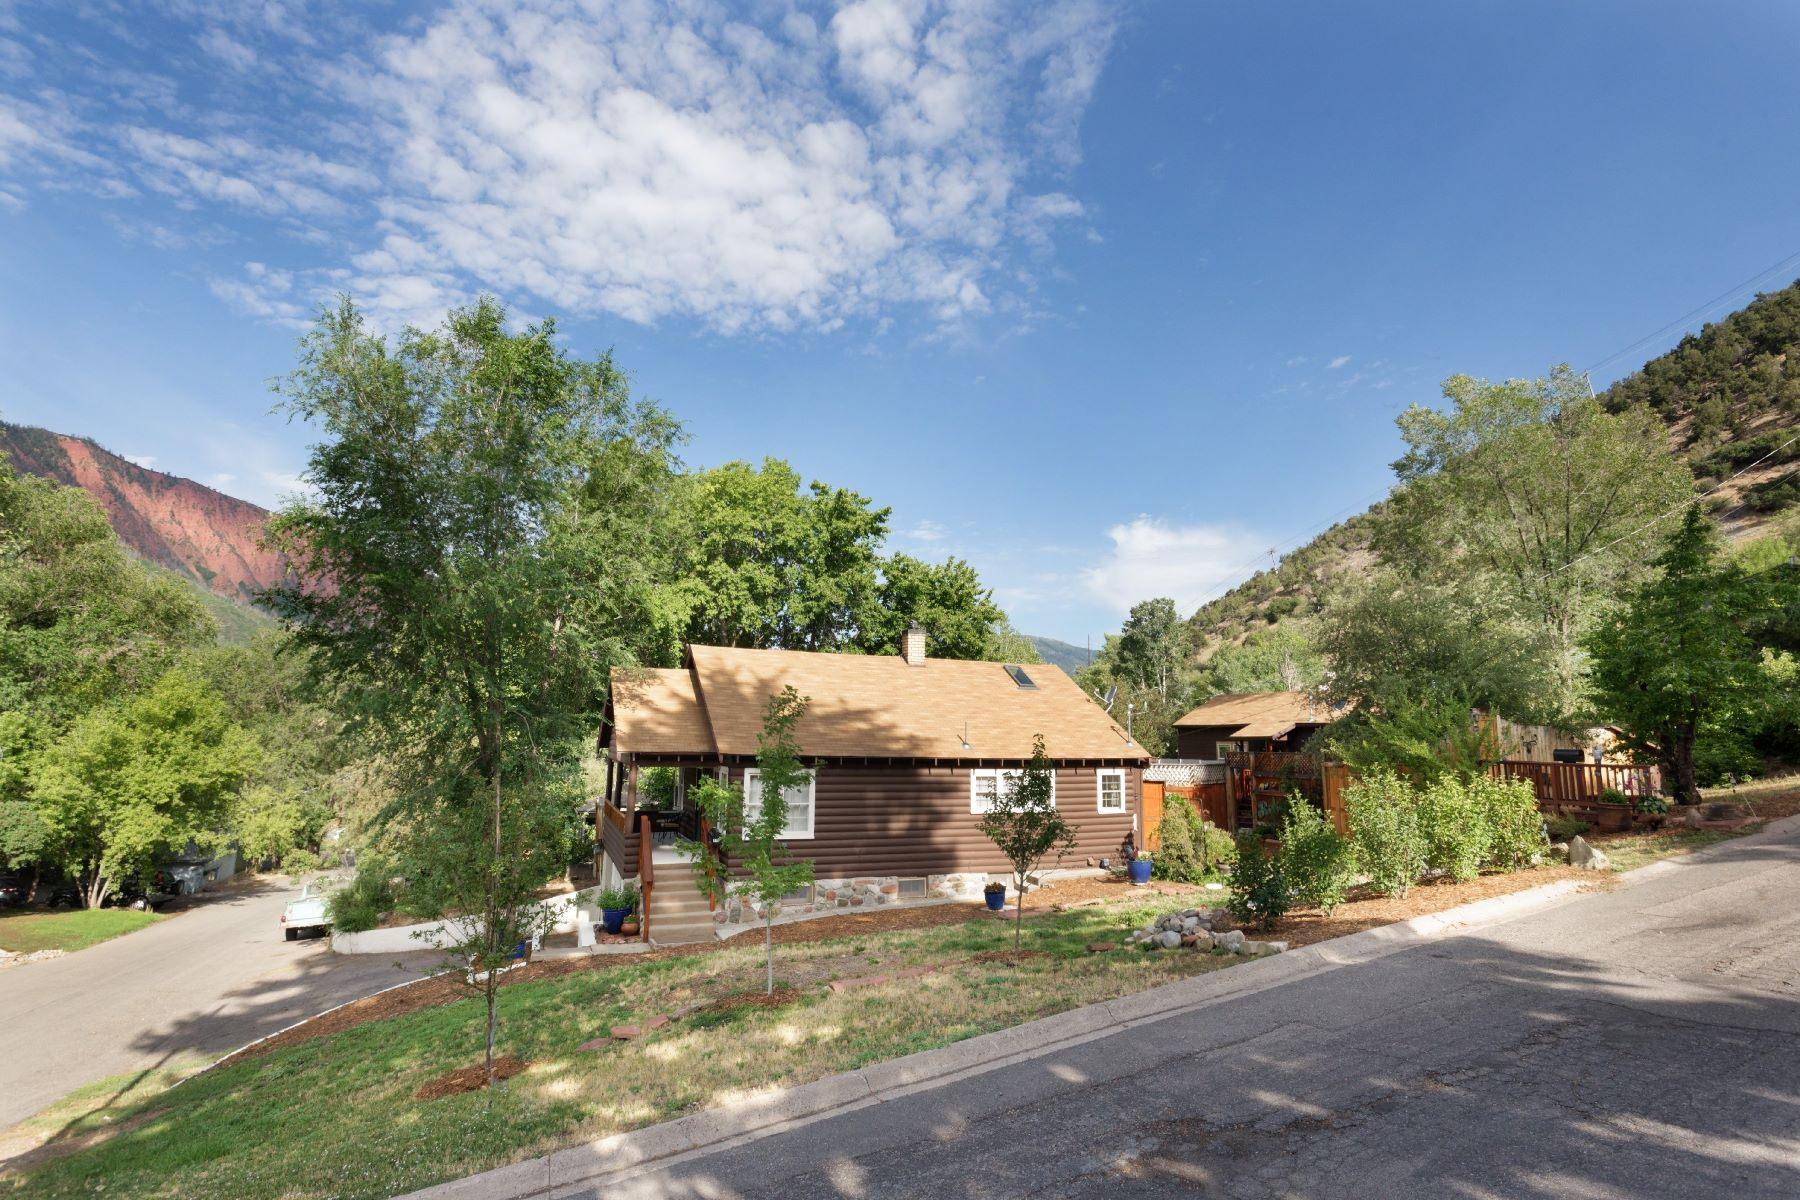 Single Family Home for Sale at Glenwood Springs 115 3rd Street Glenwood Springs, Colorado, 81601 United States